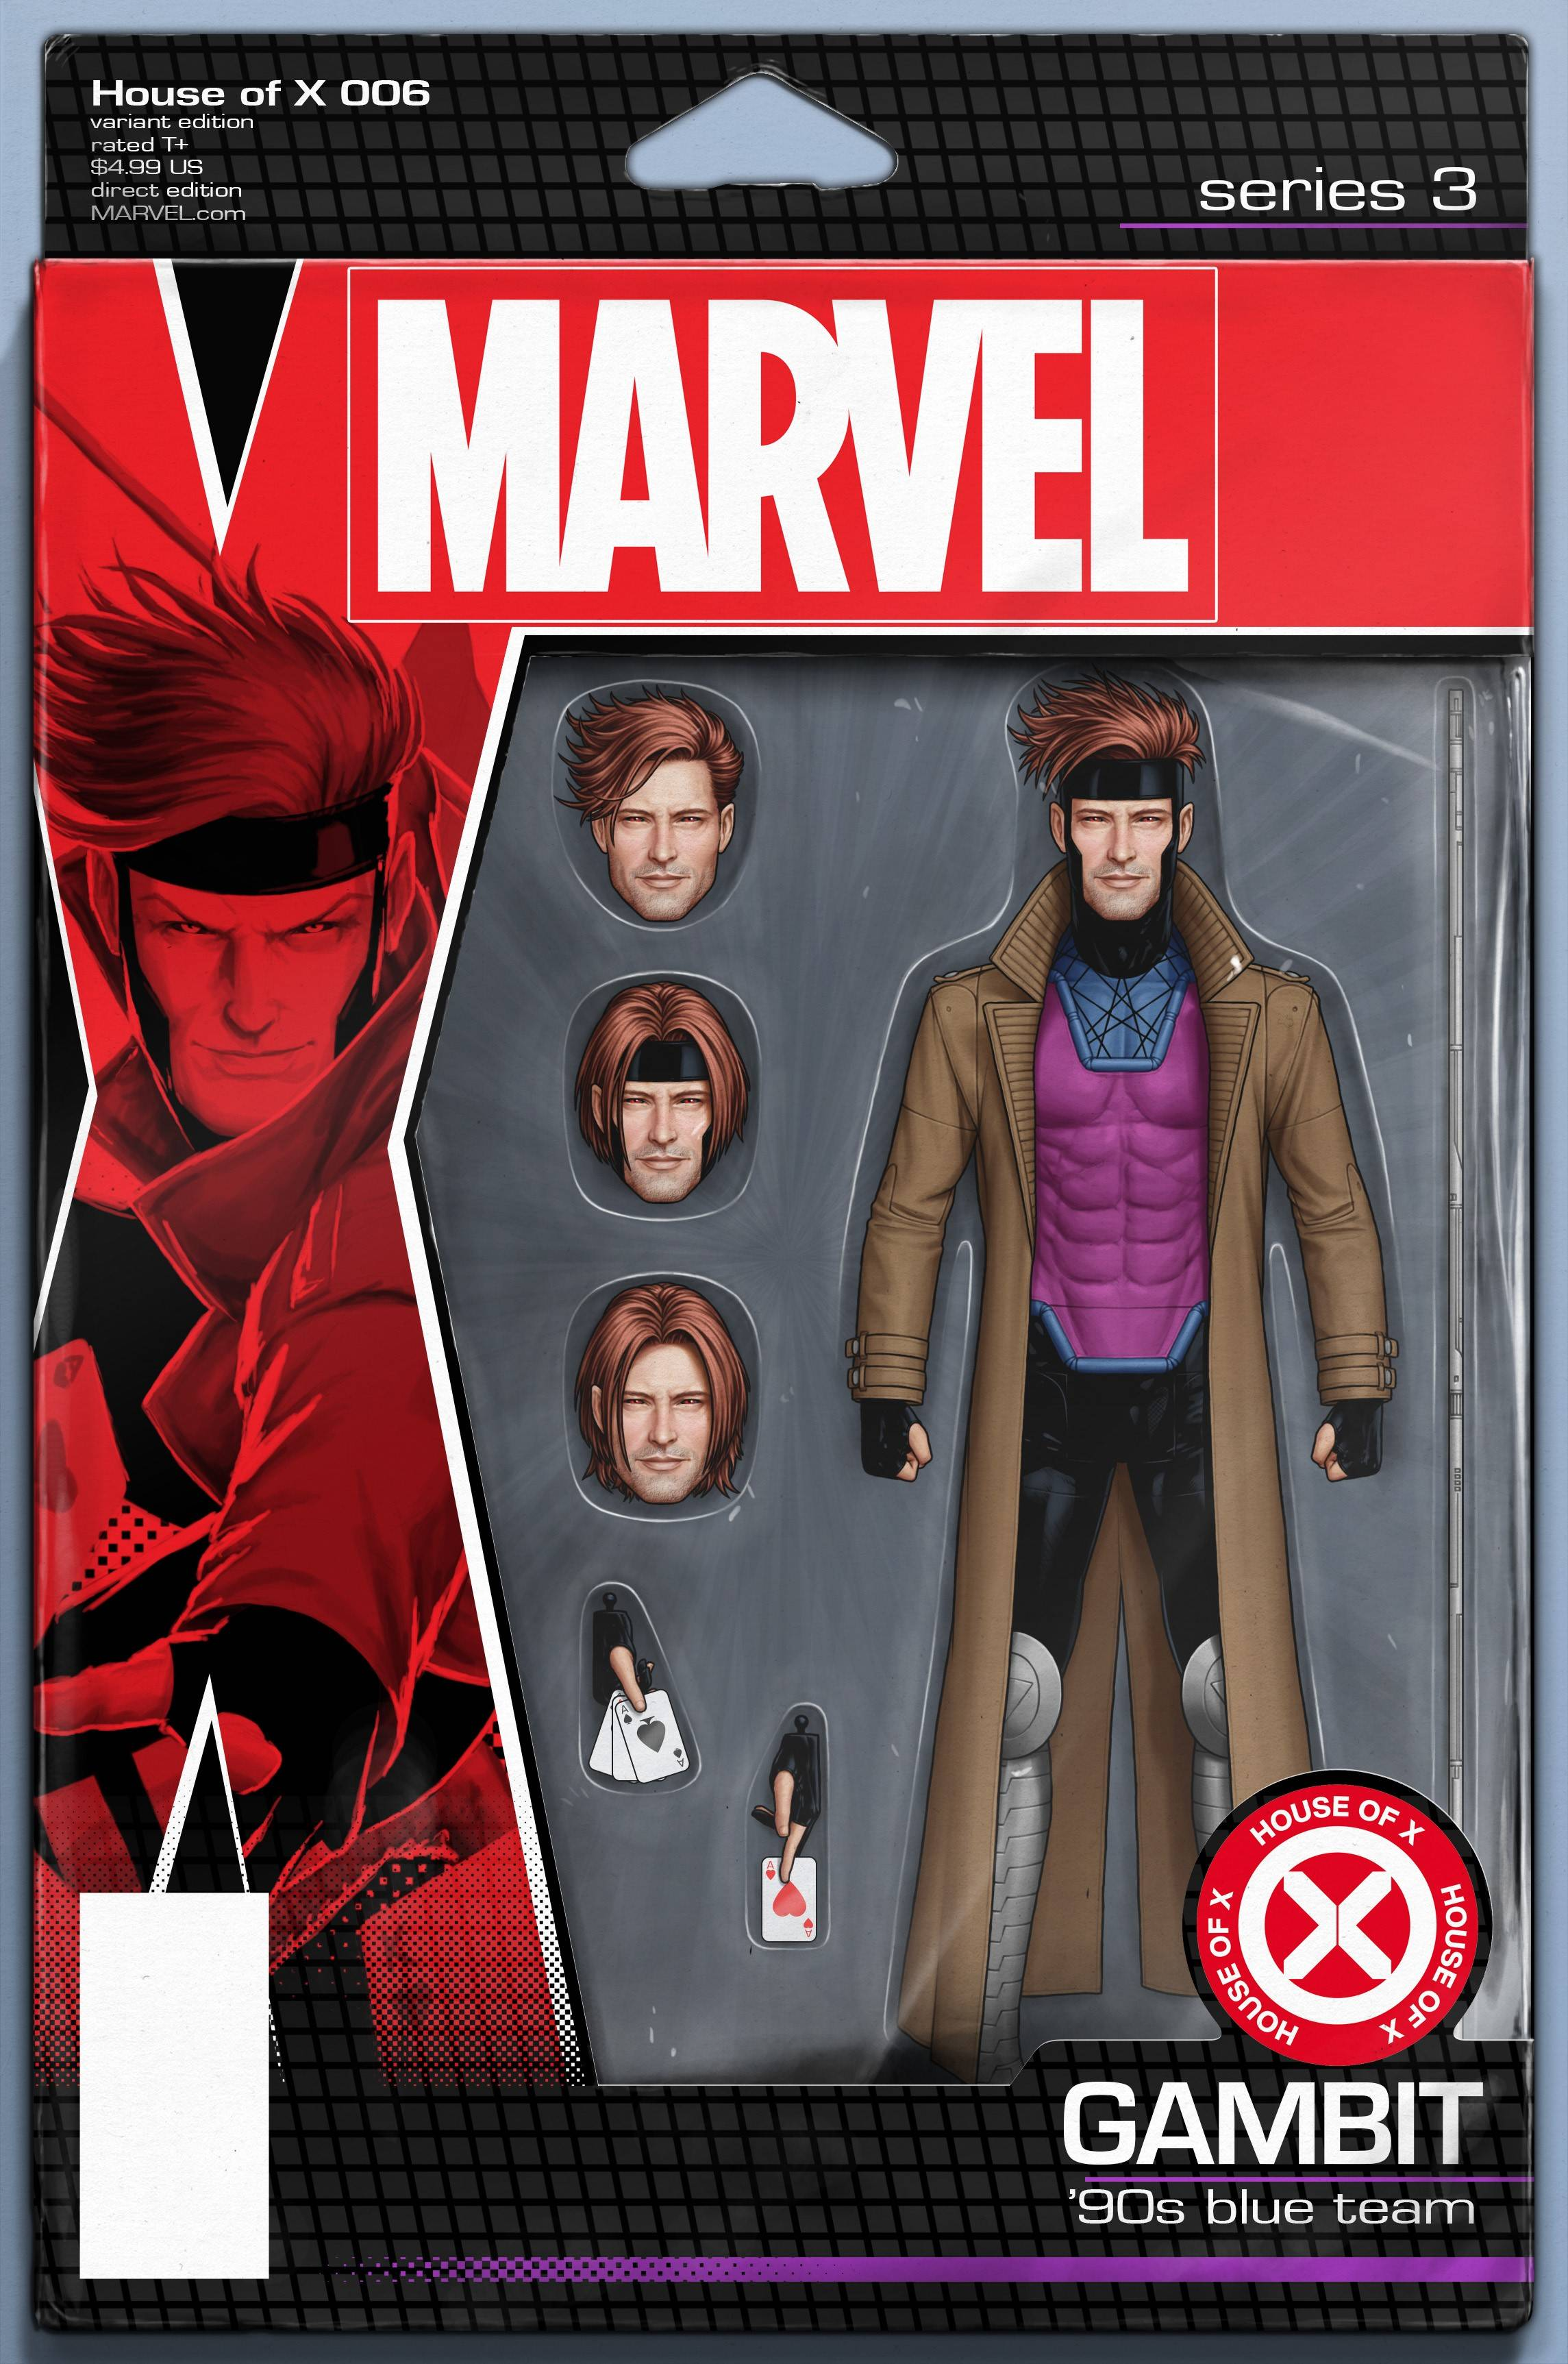 HOUSE OF X 6 of 6 CHRISTOPHER ACTION FIGURE VAR.jpg